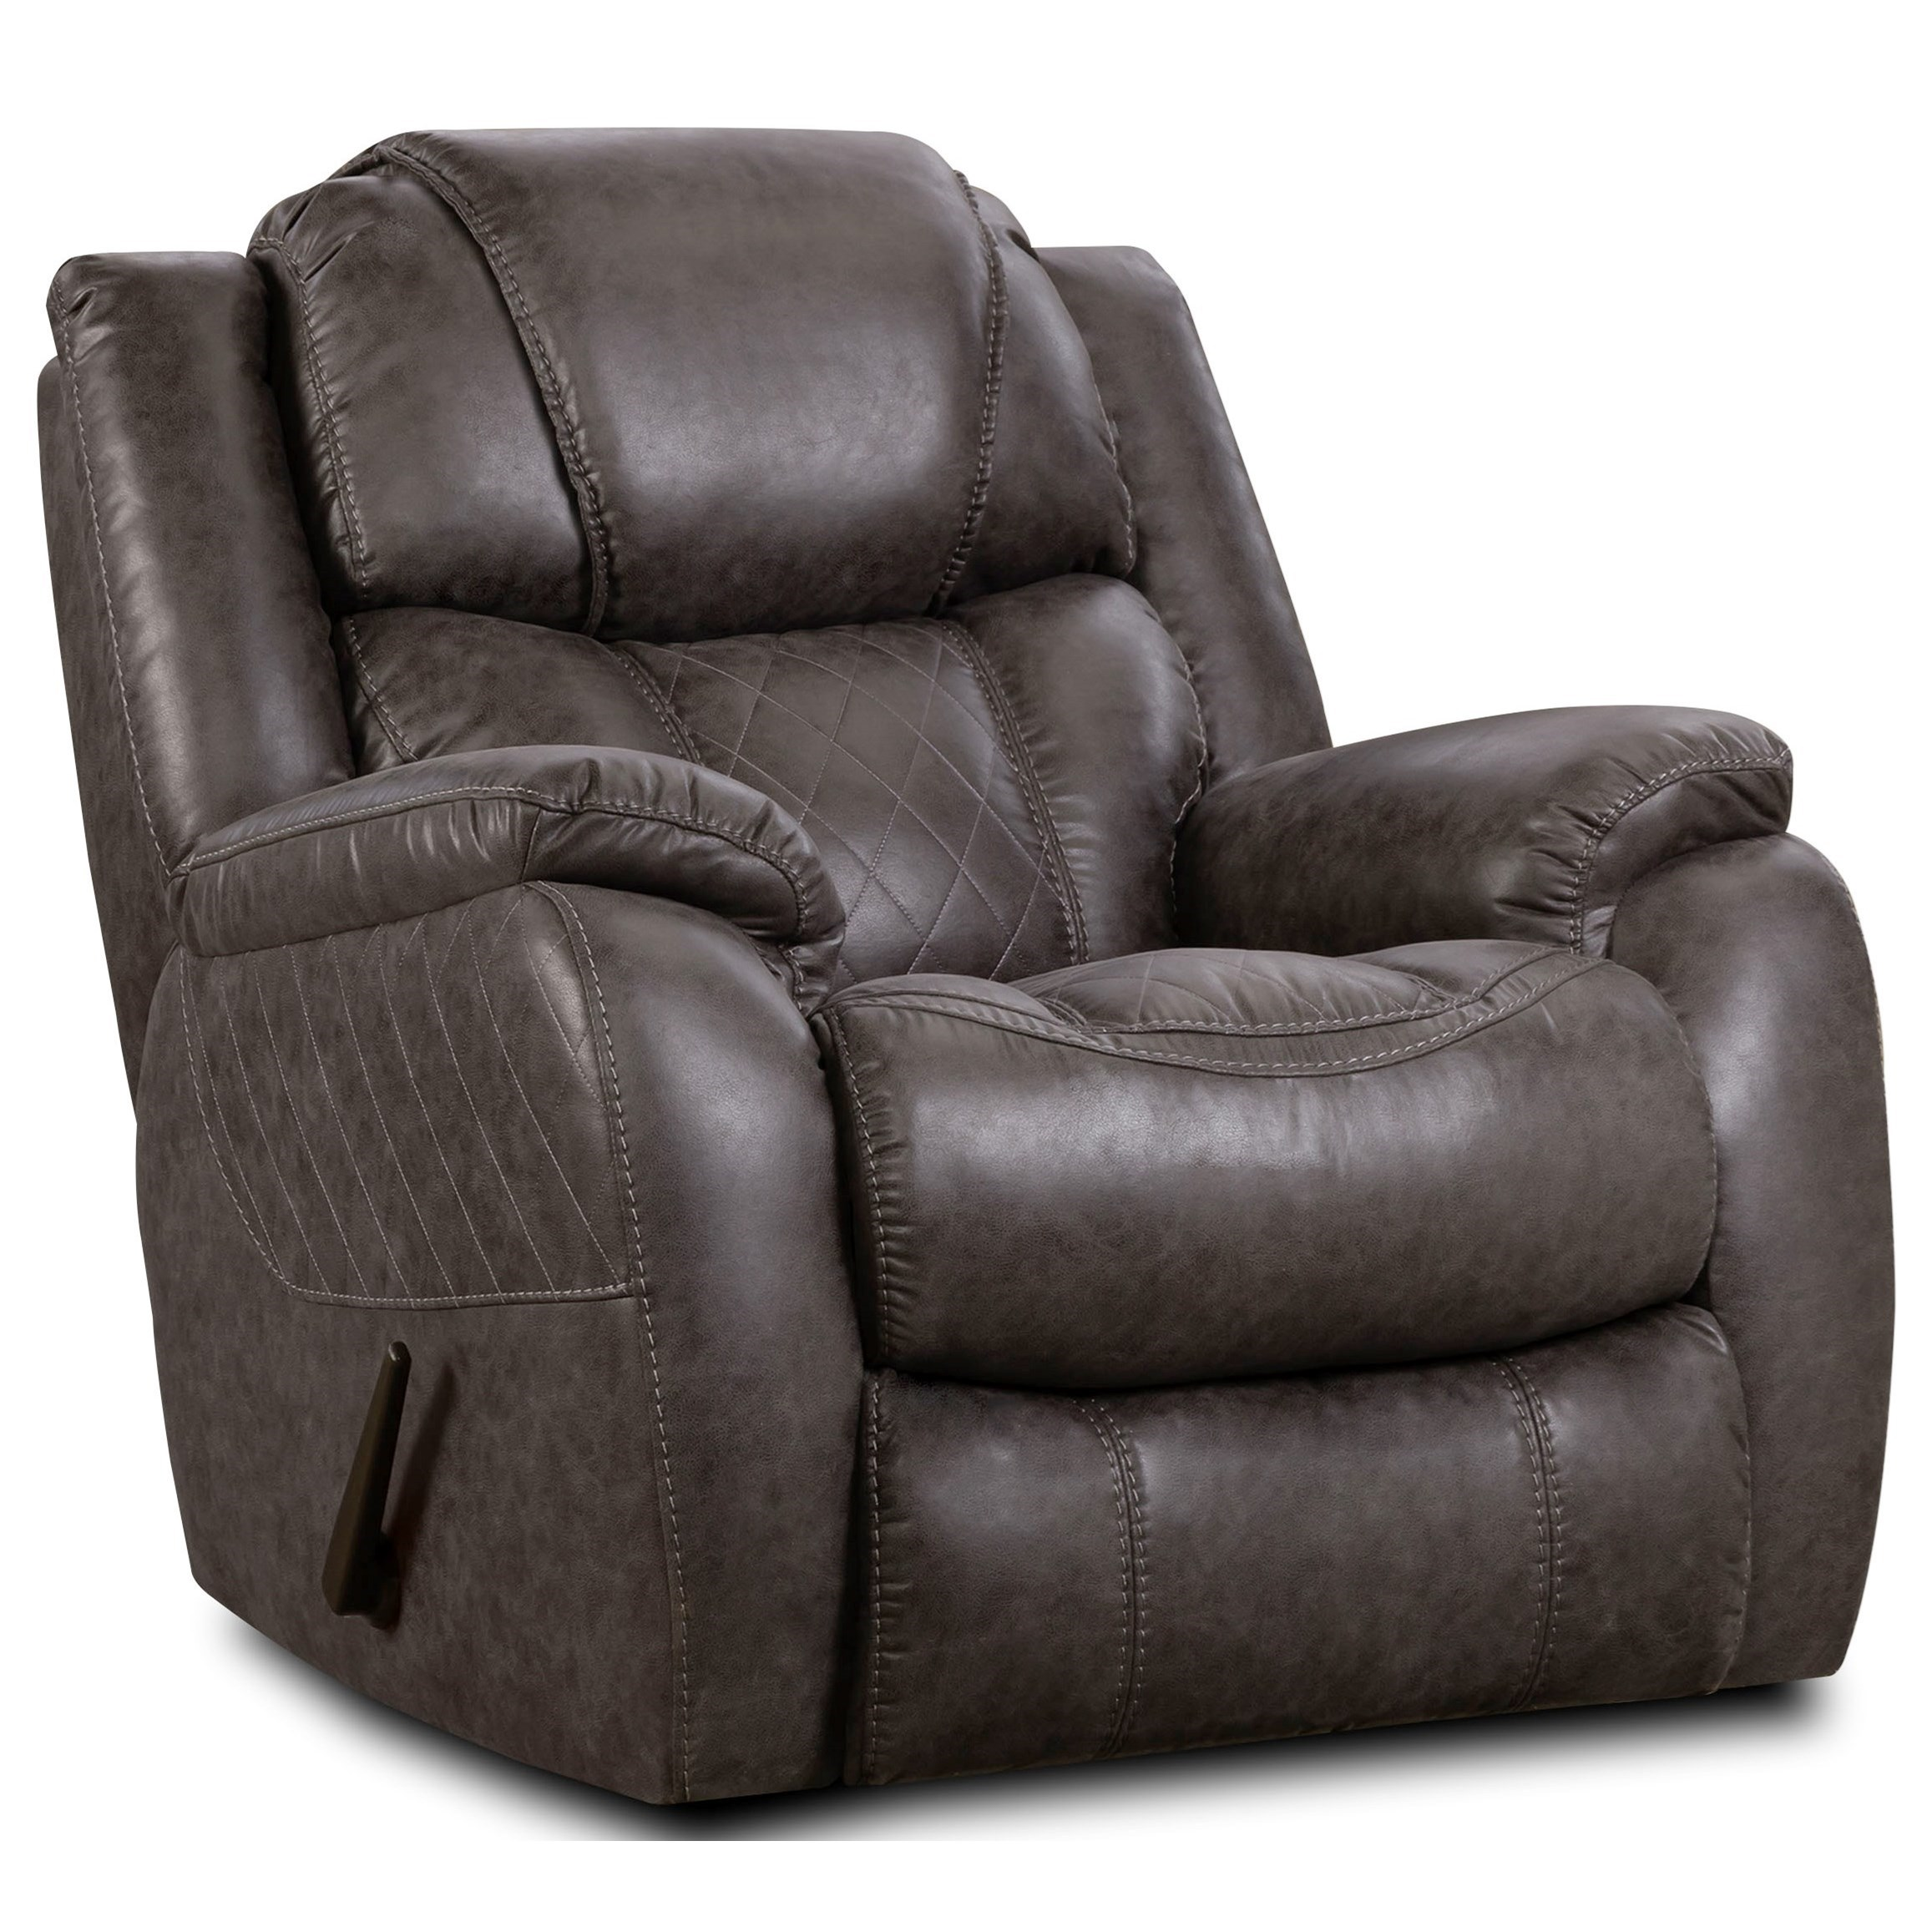 182 Rocker Recliner by HomeStretch at Westrich Furniture & Appliances